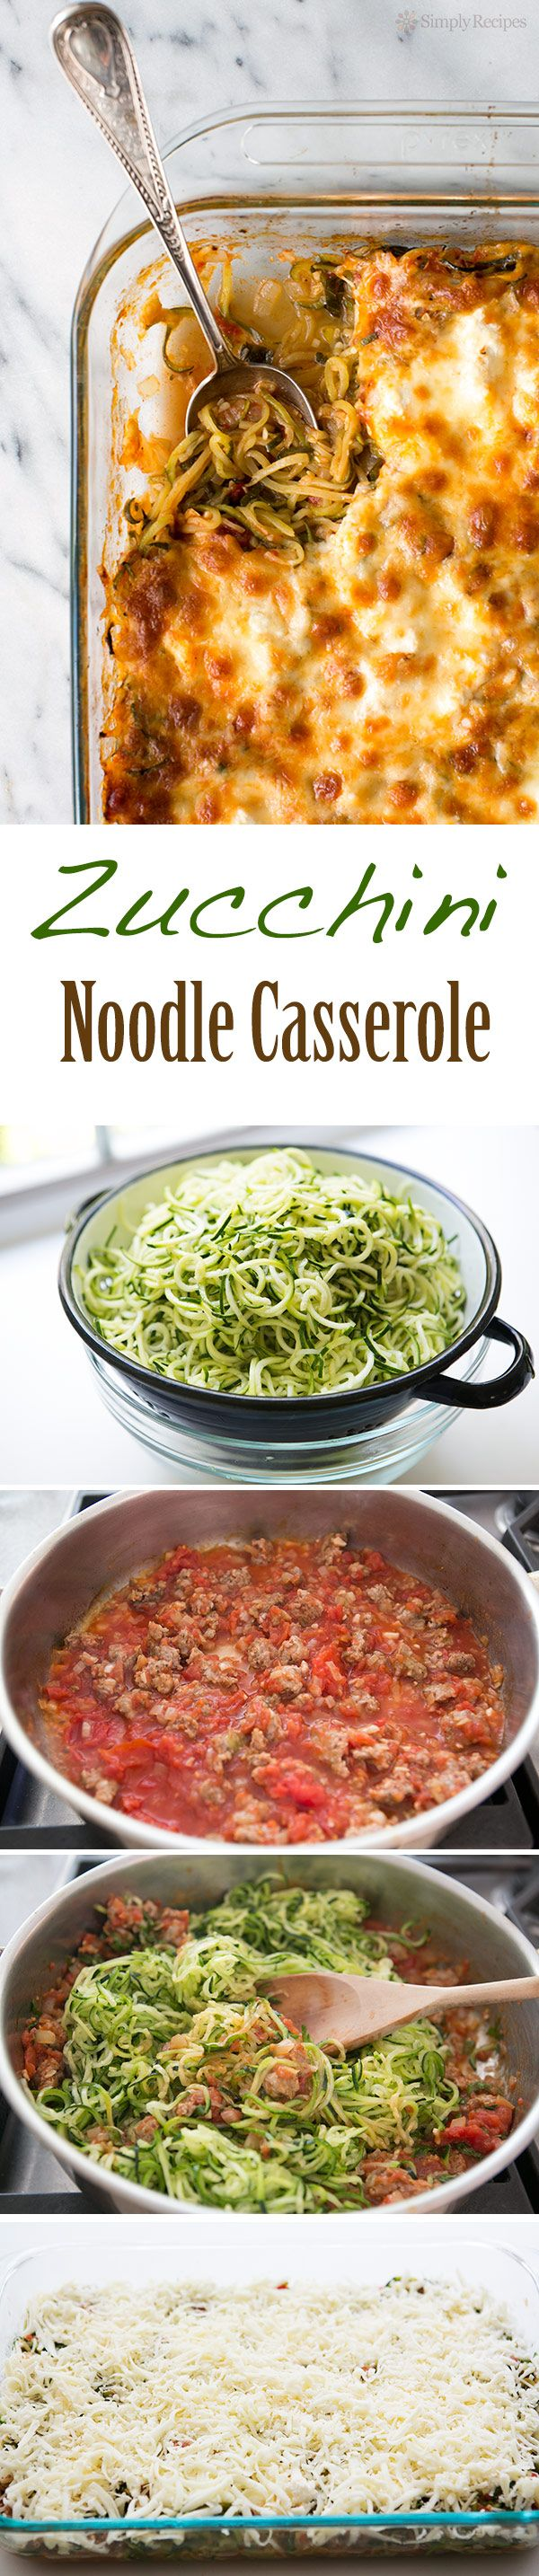 Cheesy Baked Zucchini Noodle Casserole ~ Spiralized zucchini noodles, baked in casserole with sausage tomato sauce, topped with ricotta, mozzarella, parmesan cheeses. Low carb and gluten-free! ~ SimplyRecipes.com